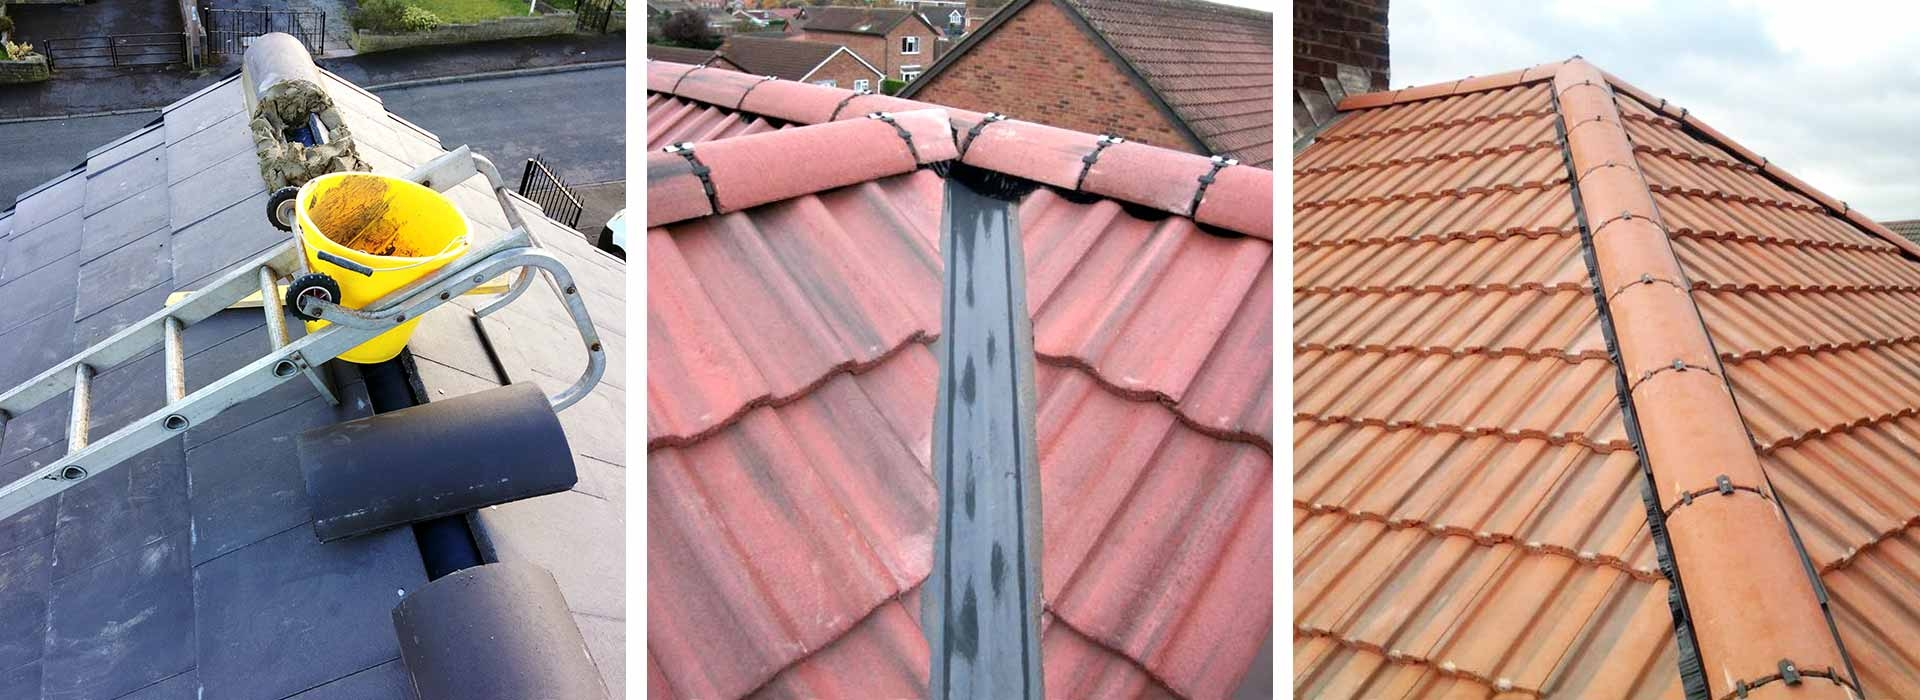 Roof Ridges Repaired in Halifax